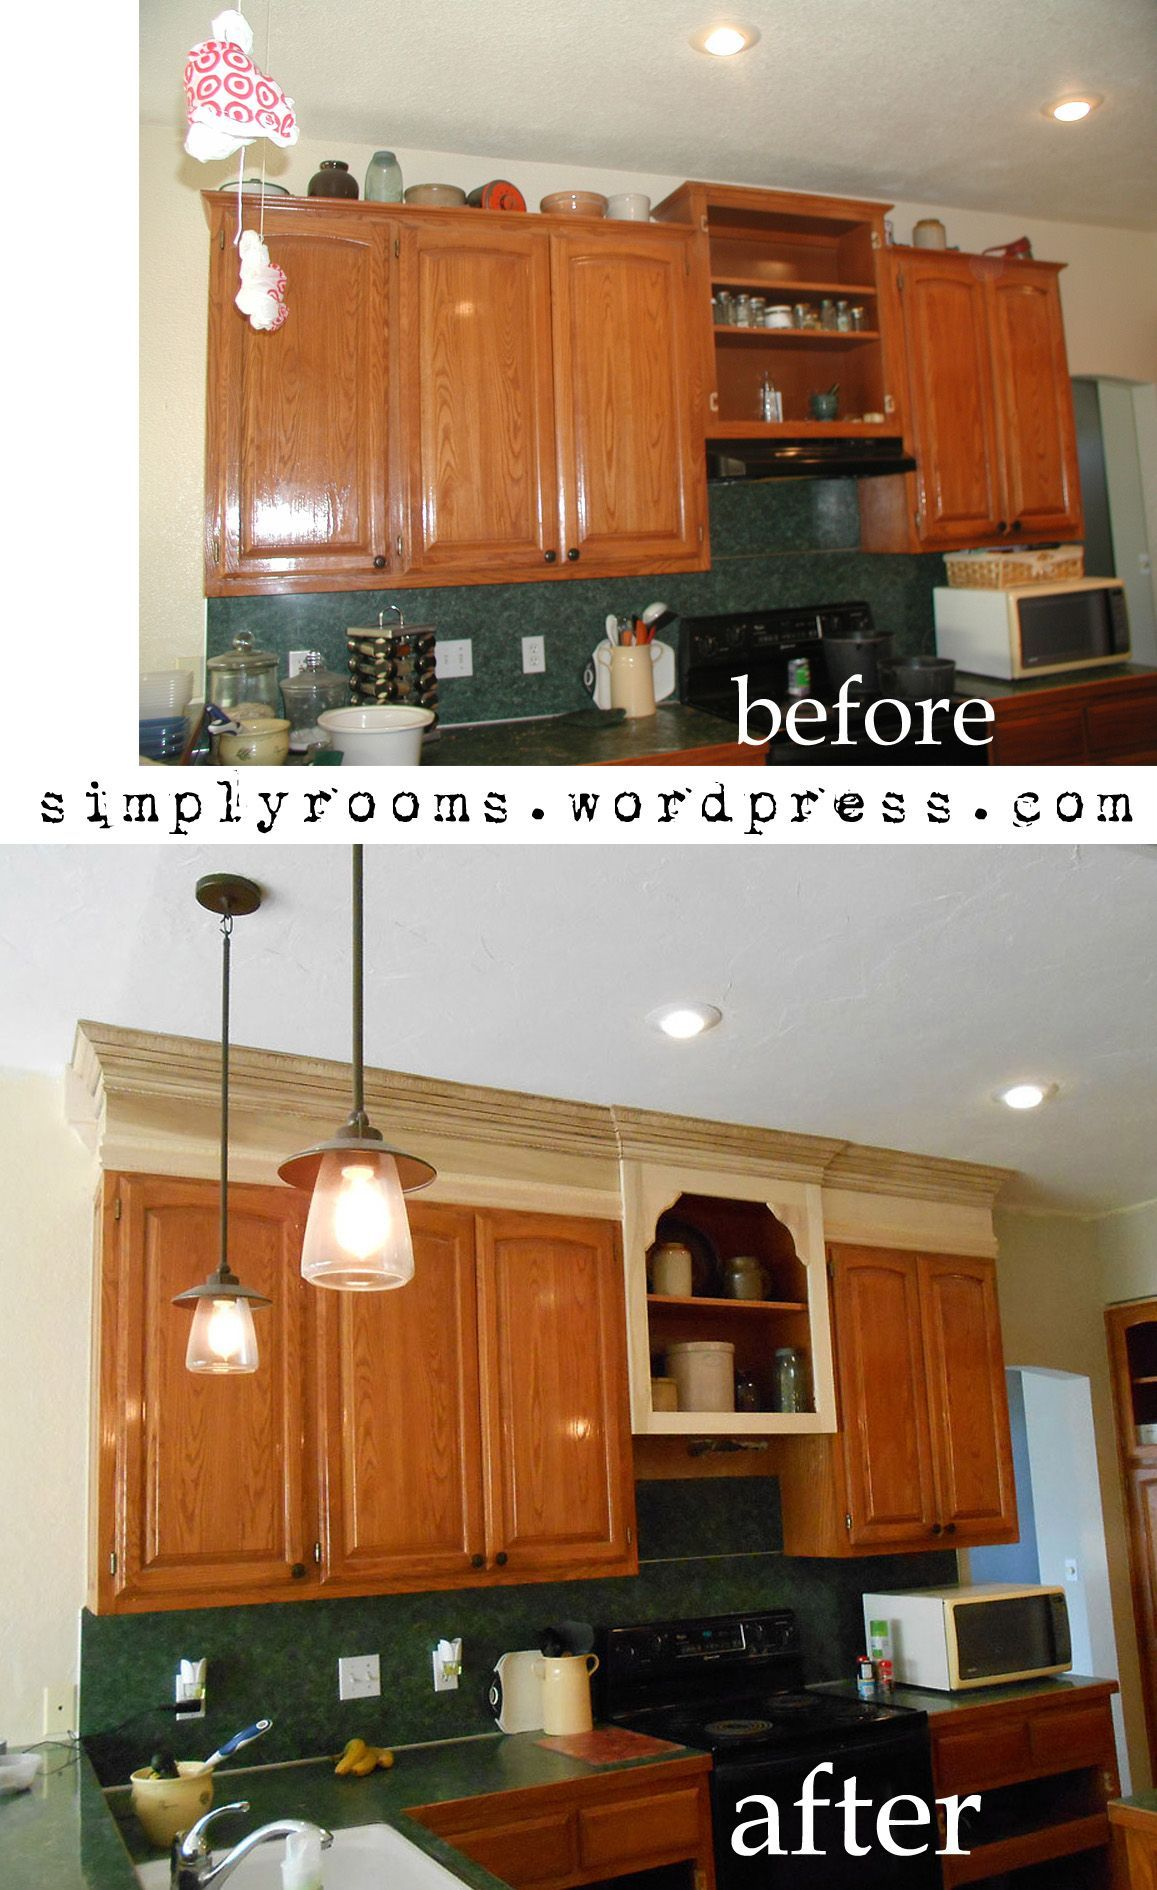 Make Kitchen Cabinets Look Taller In 2020 Kitchen Cabinet Remodel Kitchen Cabinets To Ceiling Kitchen Remodeling Projects